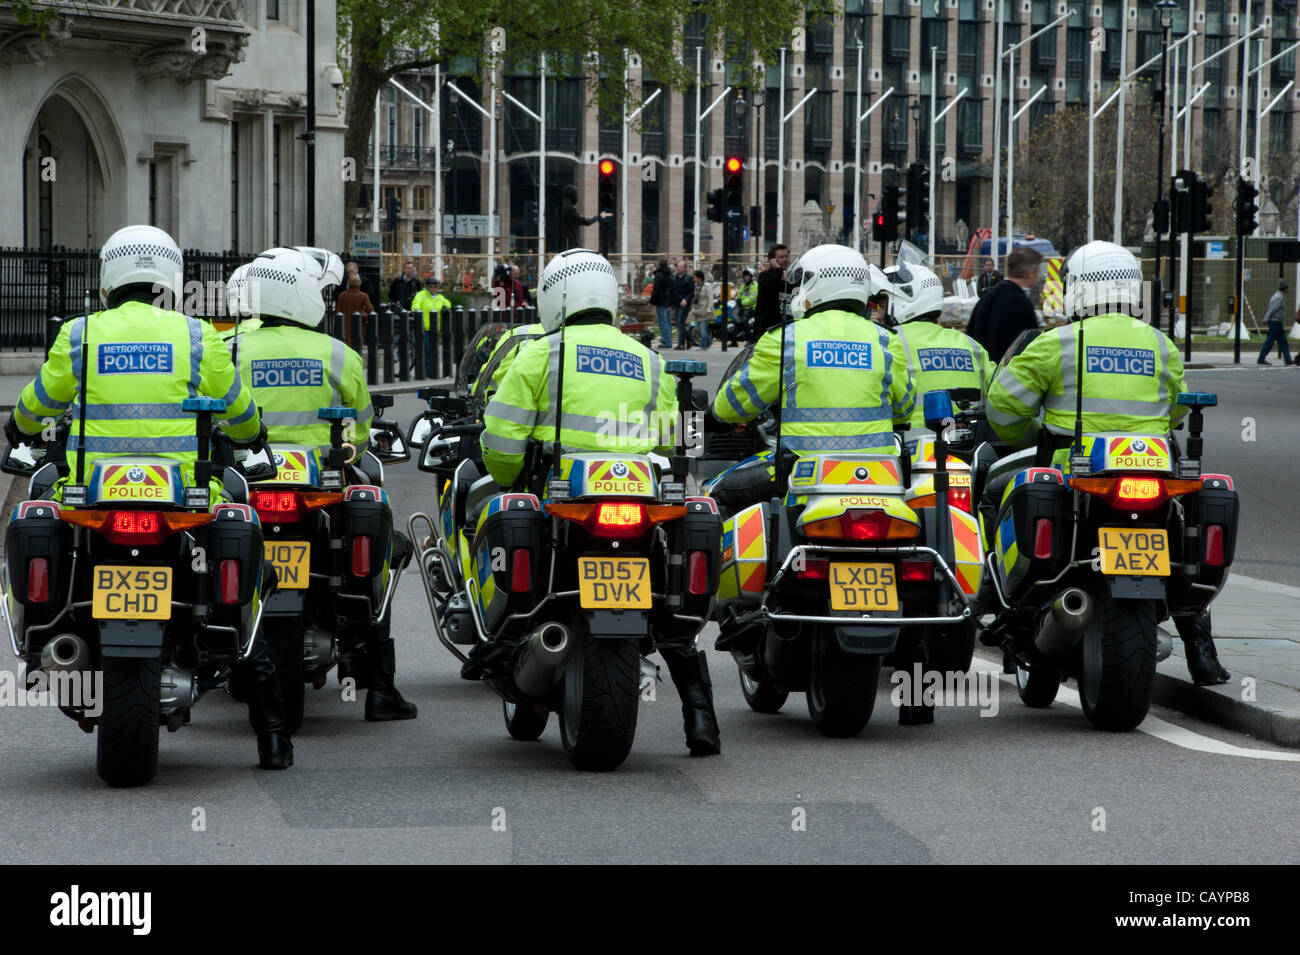 London - 10th May 2012 - Members of the police federation held a march in London to demonstrate against funding - Stock Image